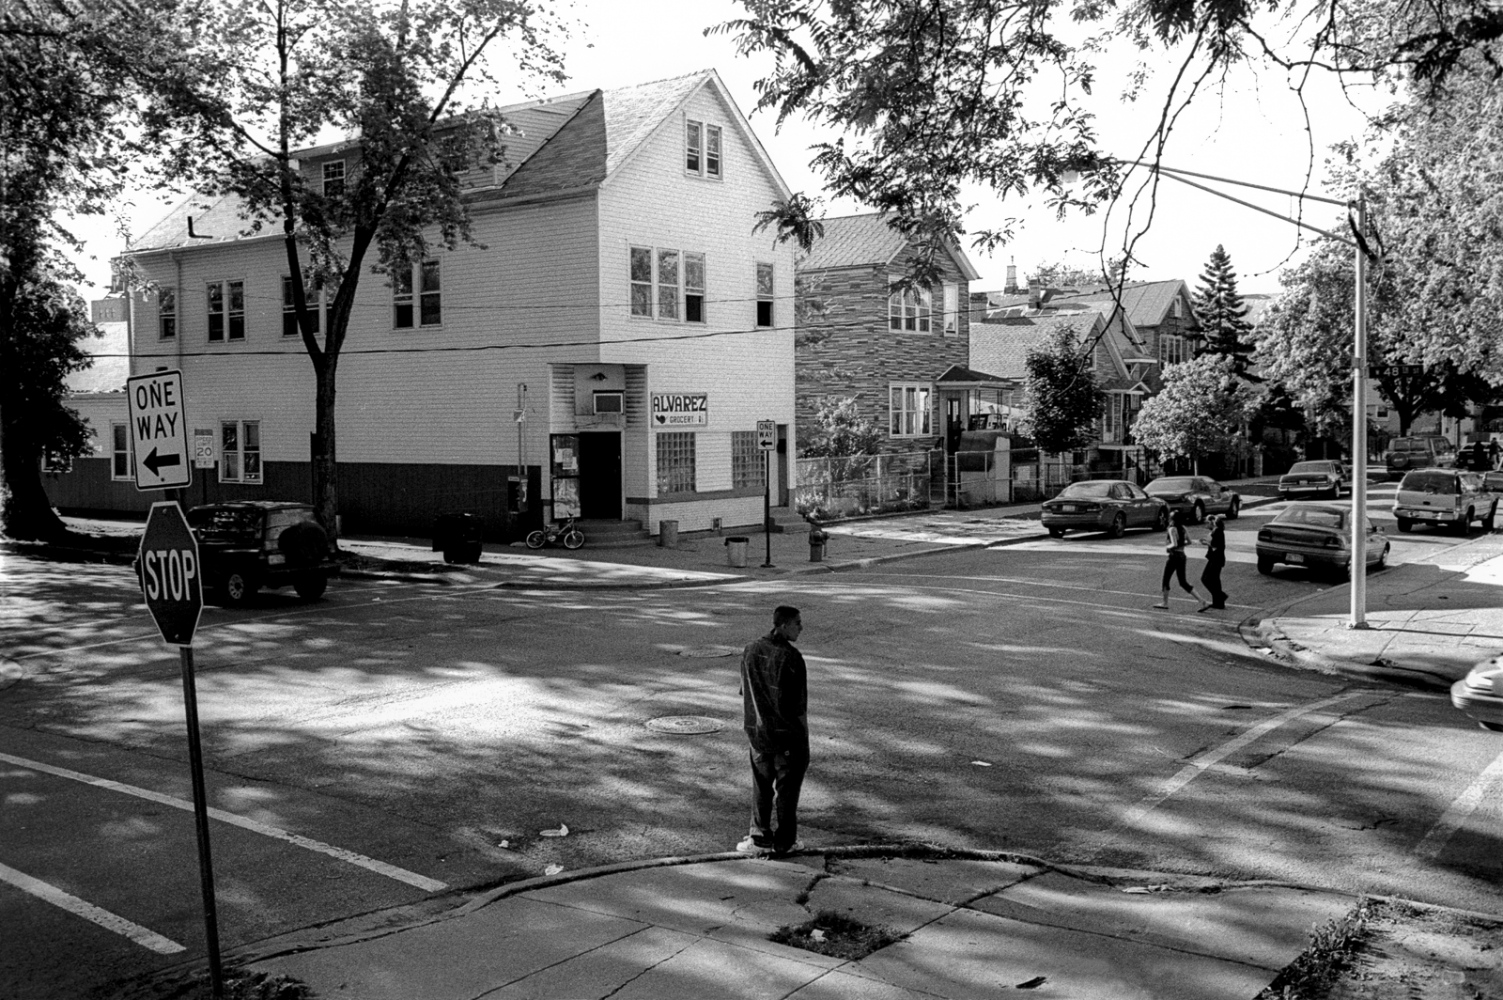 Michael waits for a friend at the corner of 48th and Loomis in the Back of the Yards neighborhood of Chicago. Originally the Back of the Yards neighborhood consisted of immigrants from Eastern Europe and over time became predominately latino.